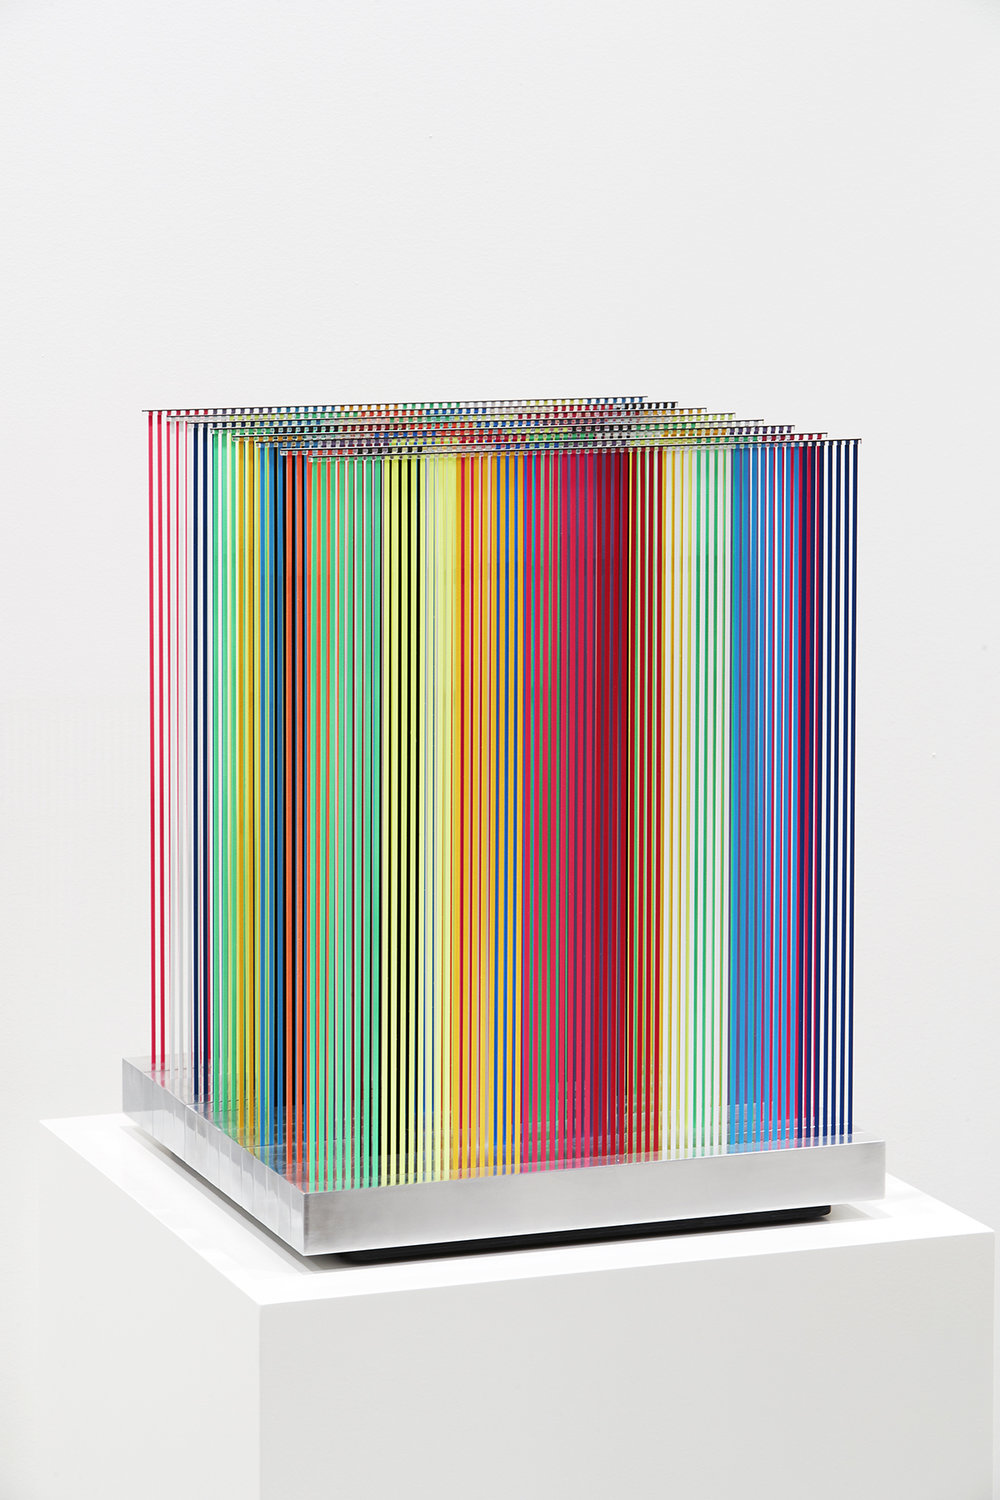 Nike Savvas,  Living on a Promise (A1),  carbon fibre, acrylic paint, aluminium, 52 x 40.5 x 40.5 cm. Photo: Zan Wimberley